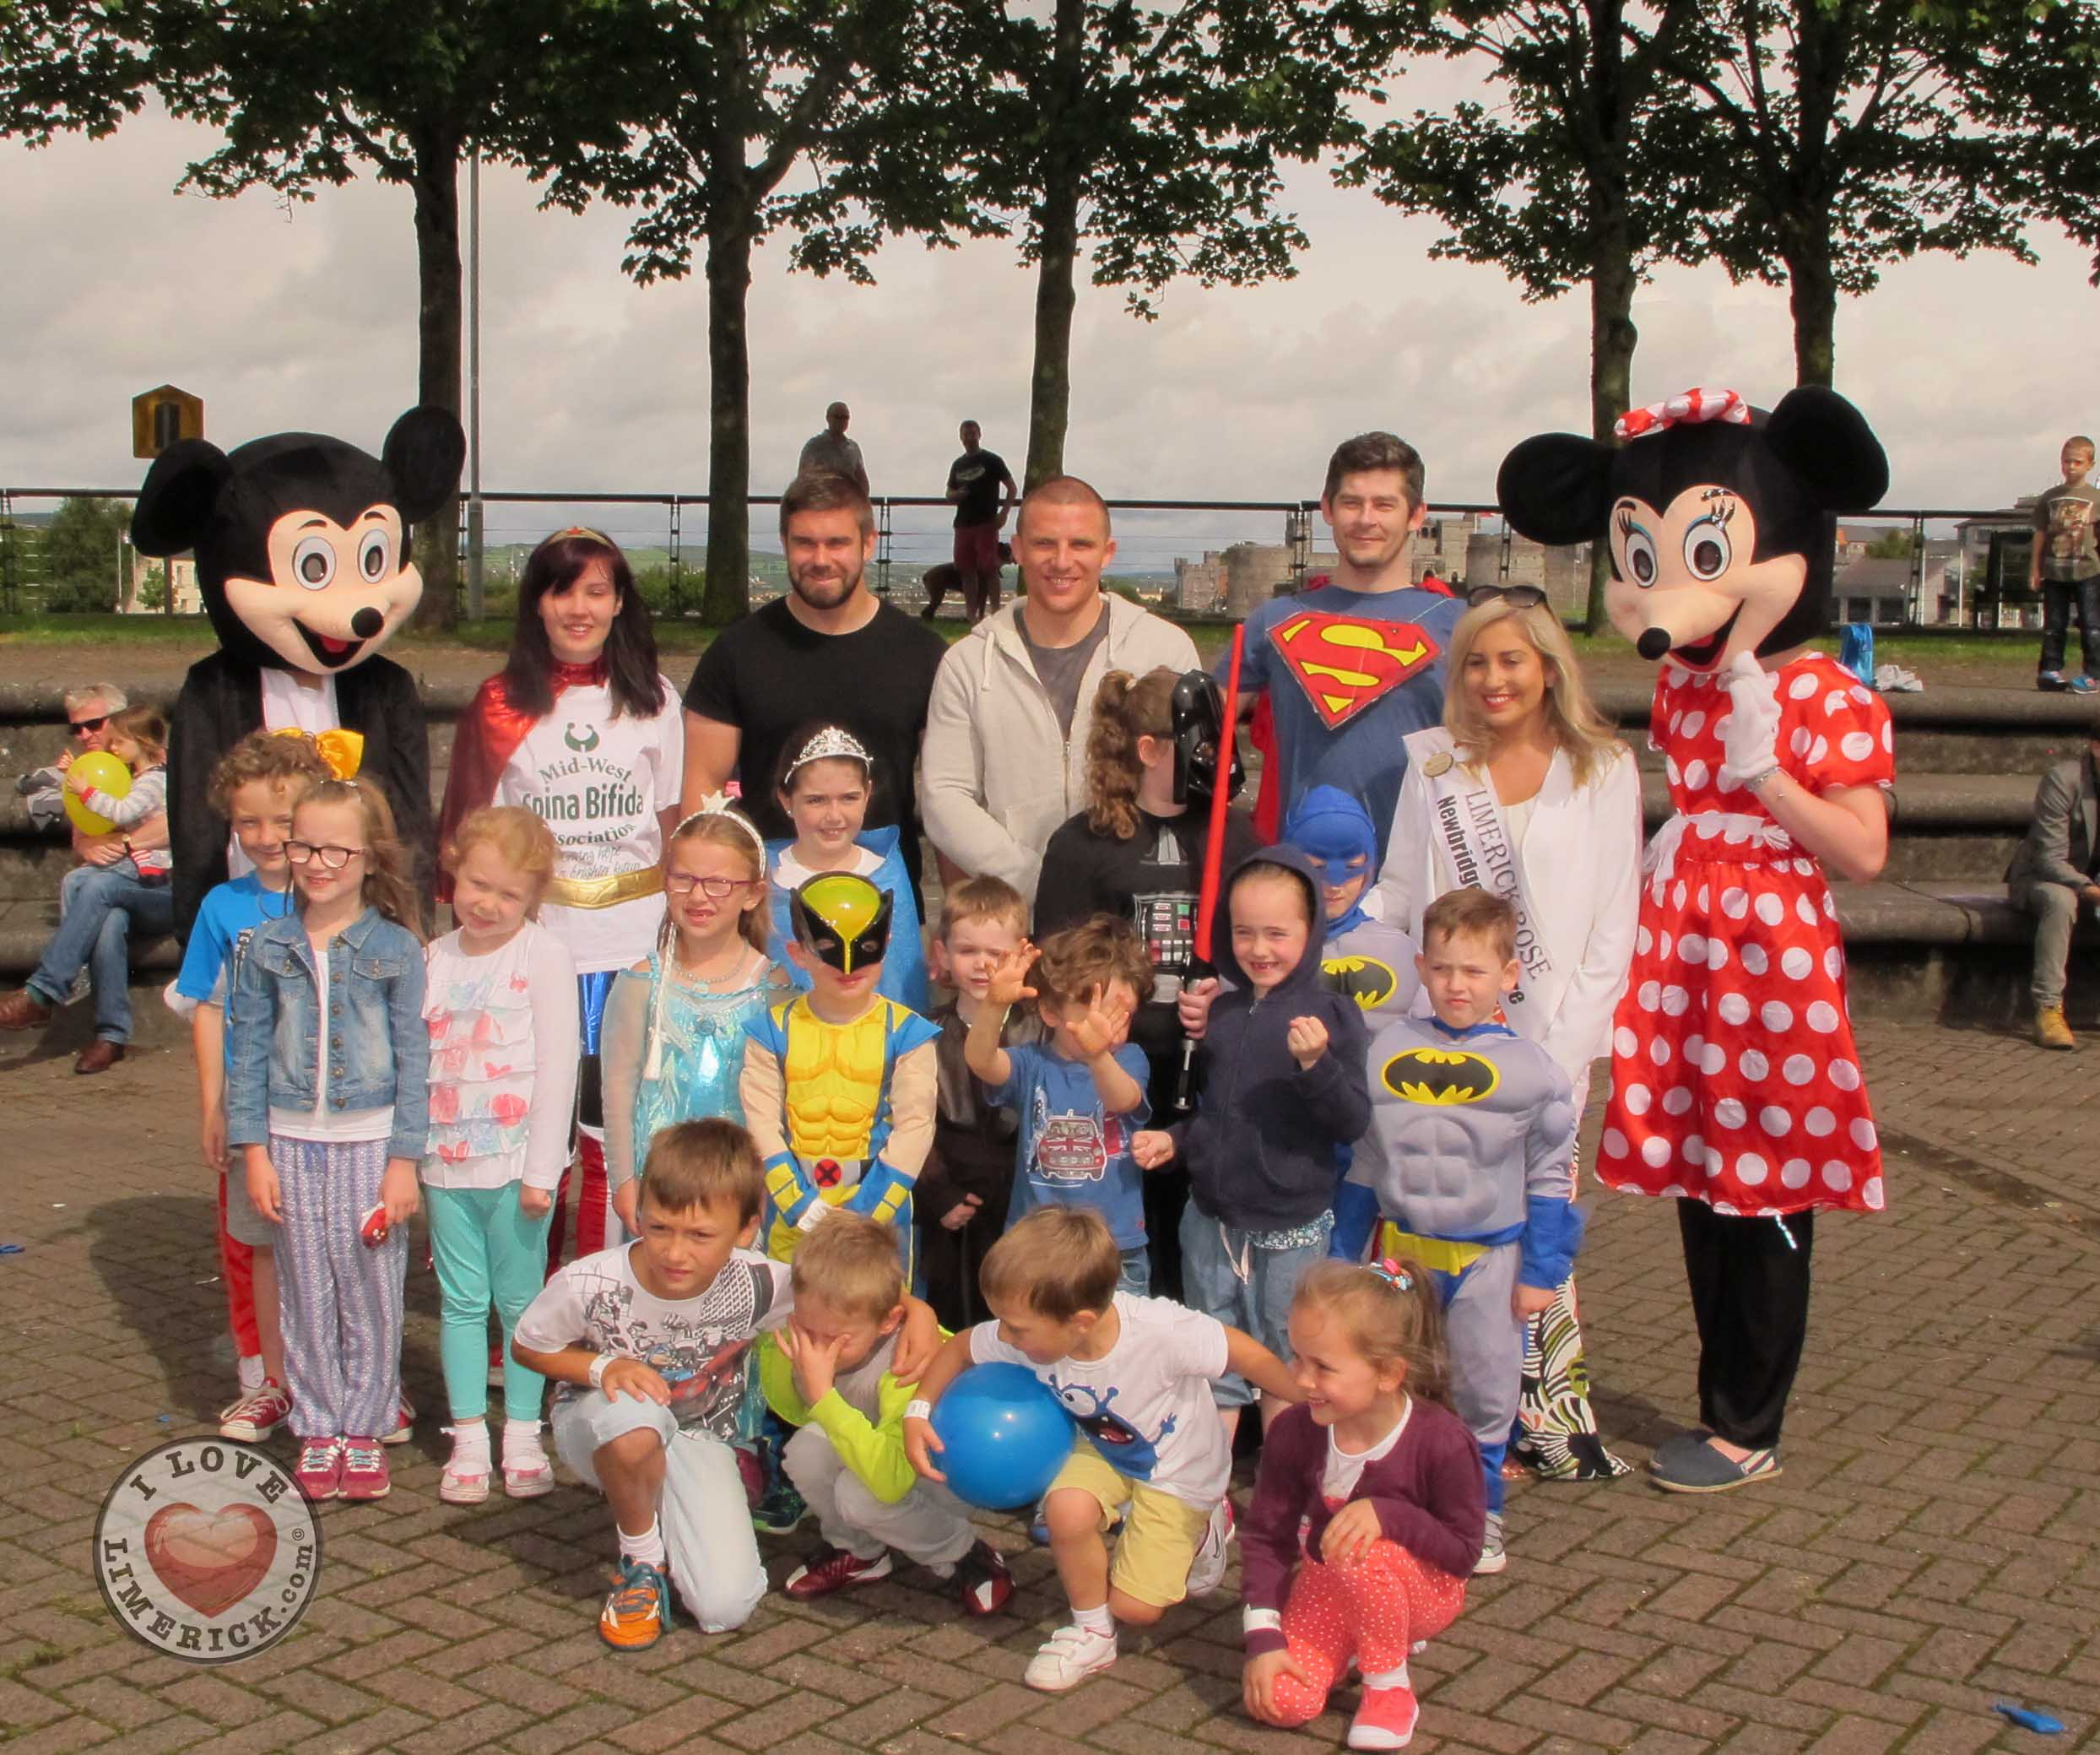 Limerick Superhero Parade 2015 in aid of Mid-West Spina Bifida Association